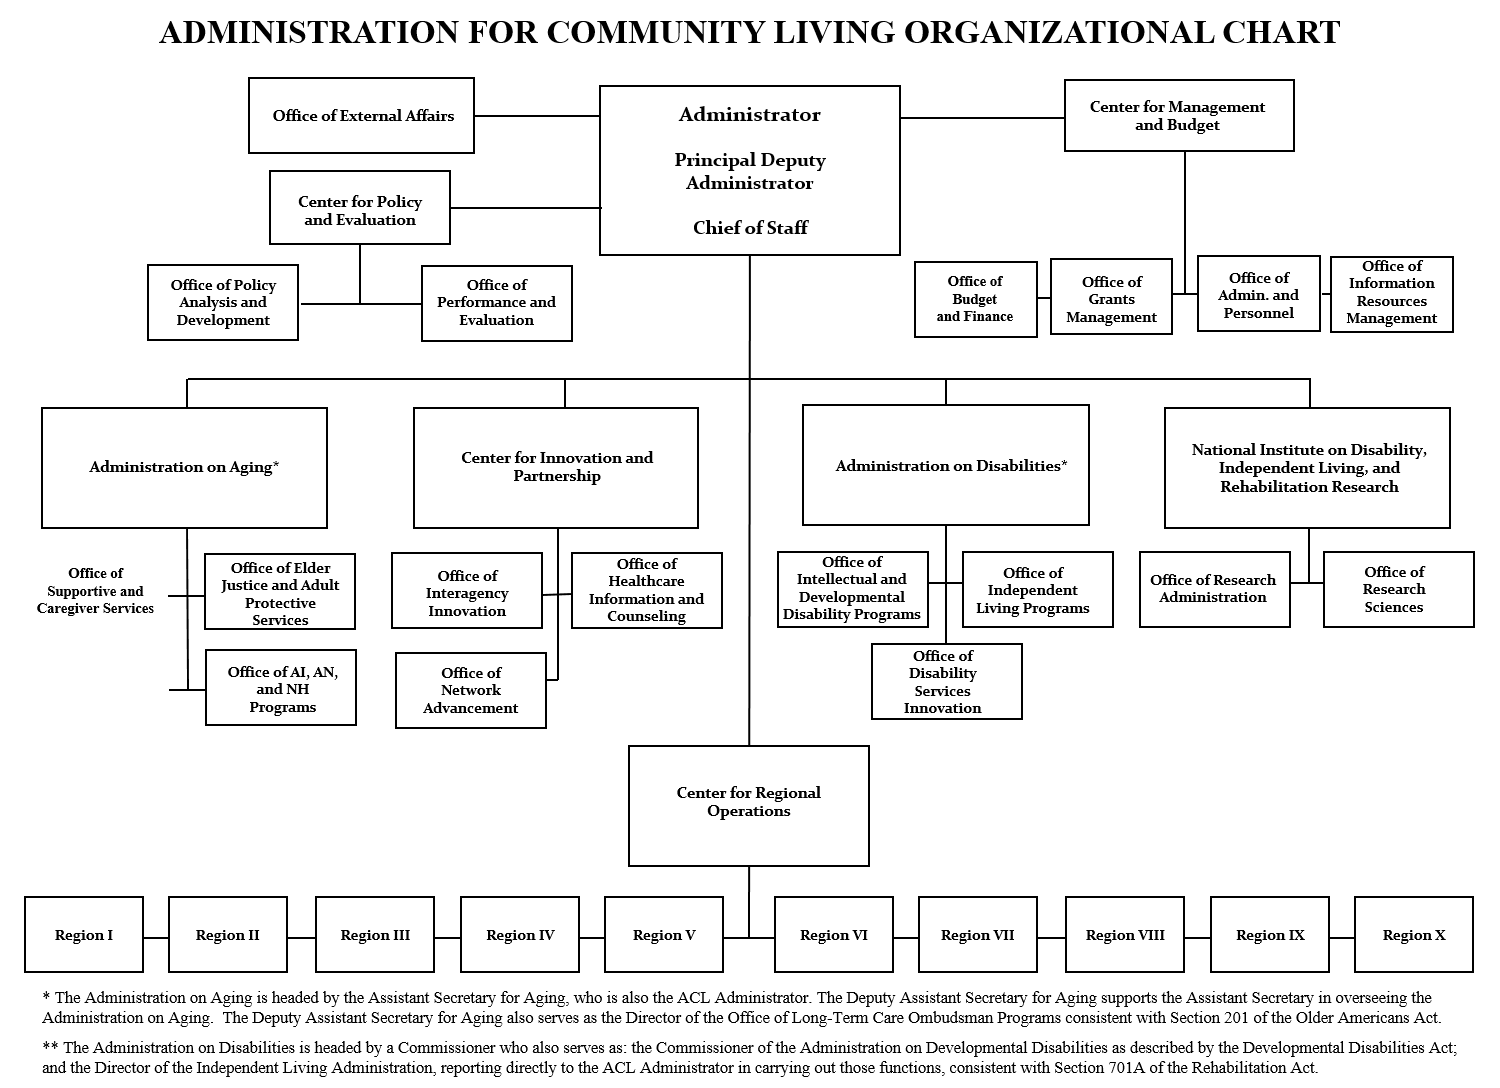 Image showing ACL Organizational Chart